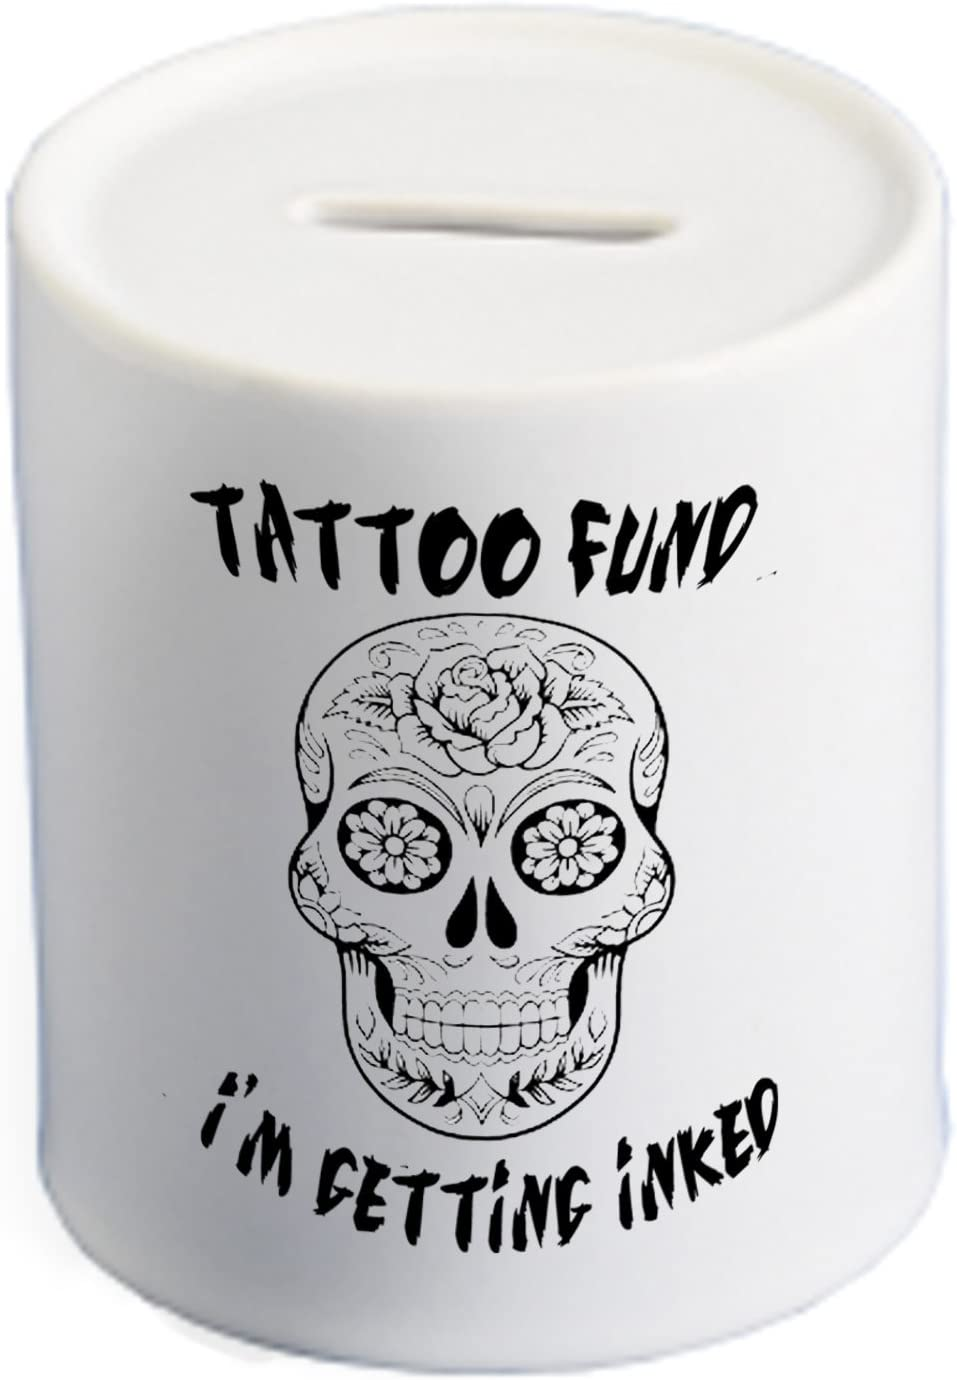 Tattoo Money Bank by BJ Betts x Inked